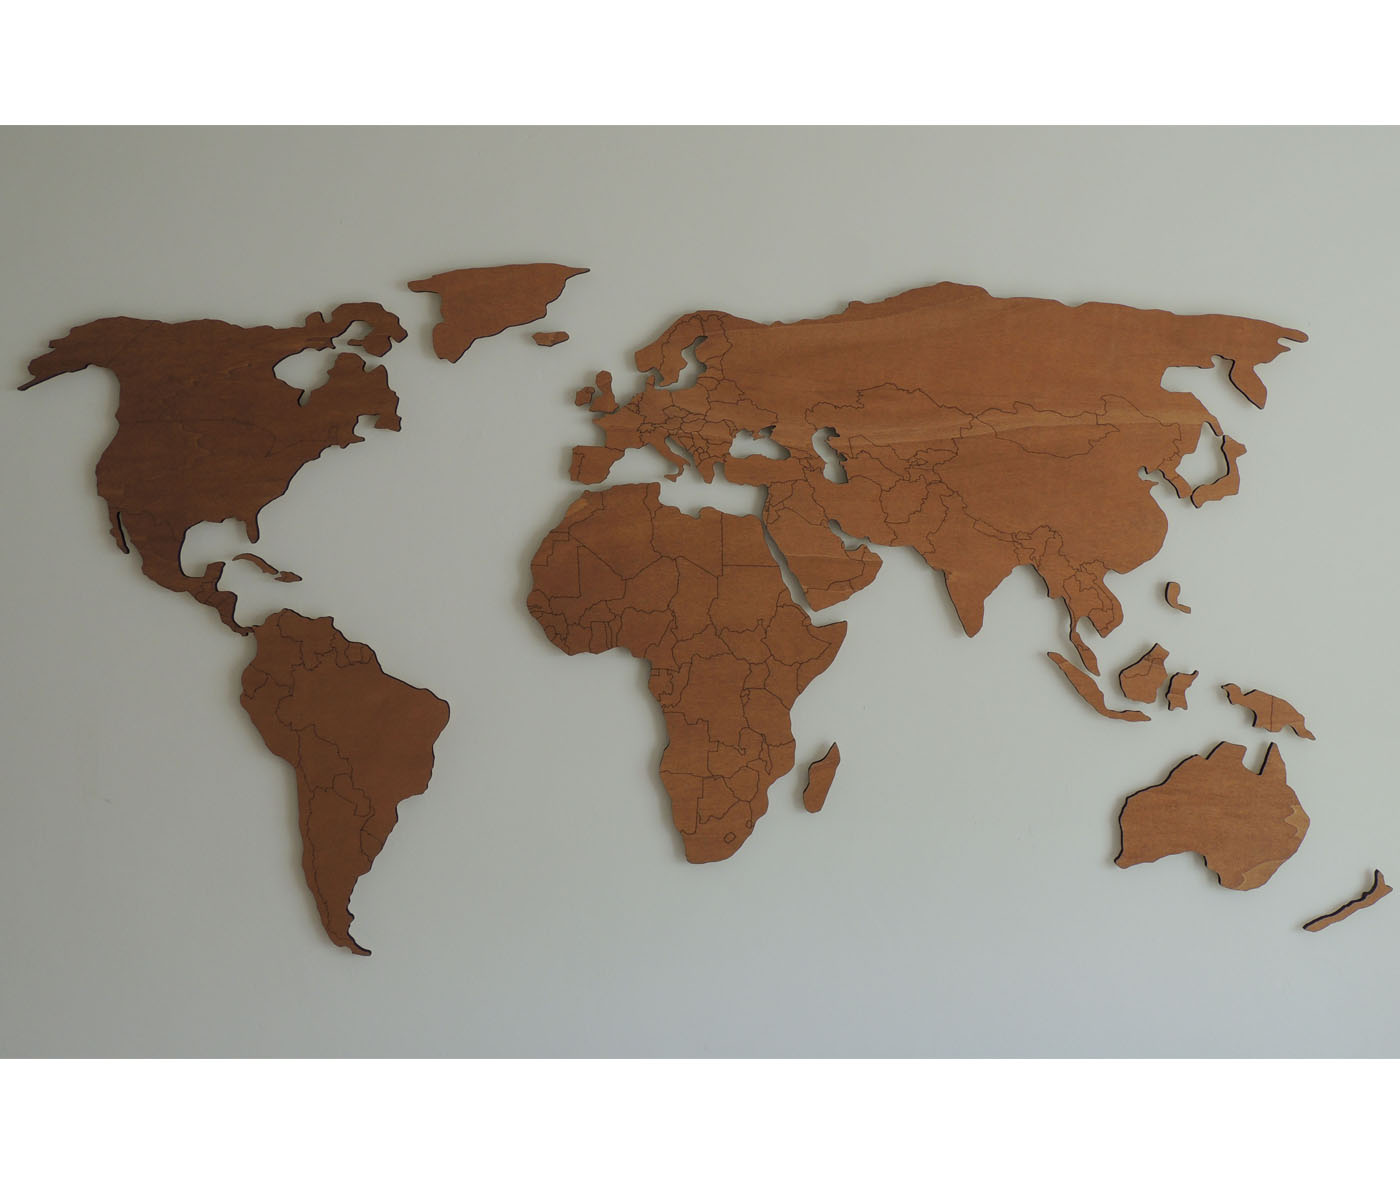 Wooden world map xl with engraved country borders paspartoetpaspartoet wooden world map xl with engraved country borders gumiabroncs Image collections